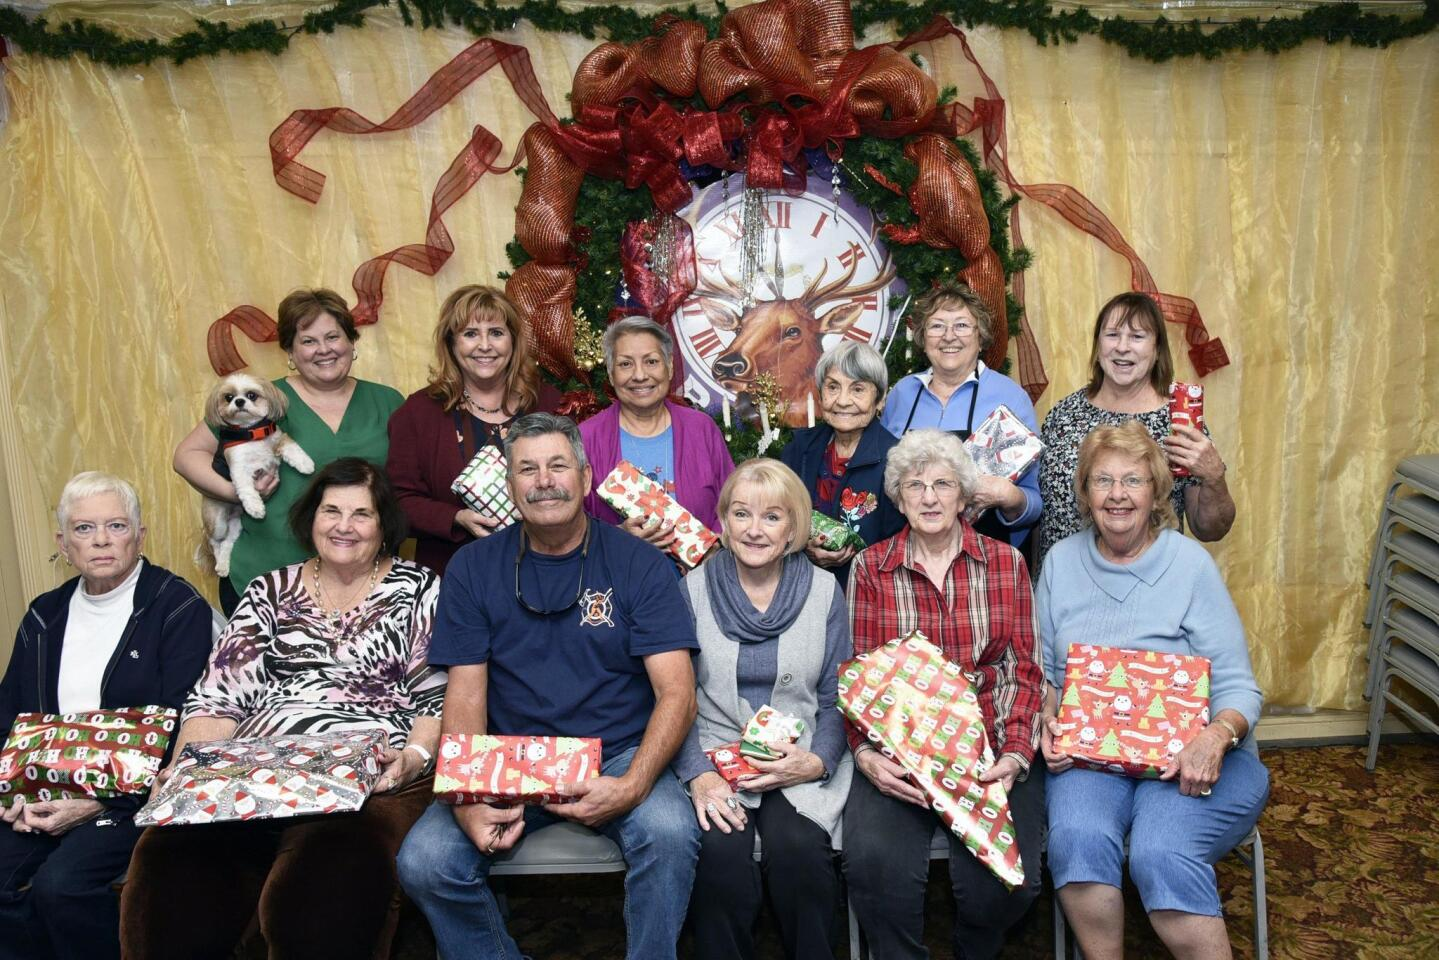 Encinitas Elks Lodge donates gifts to homeless veterans' families